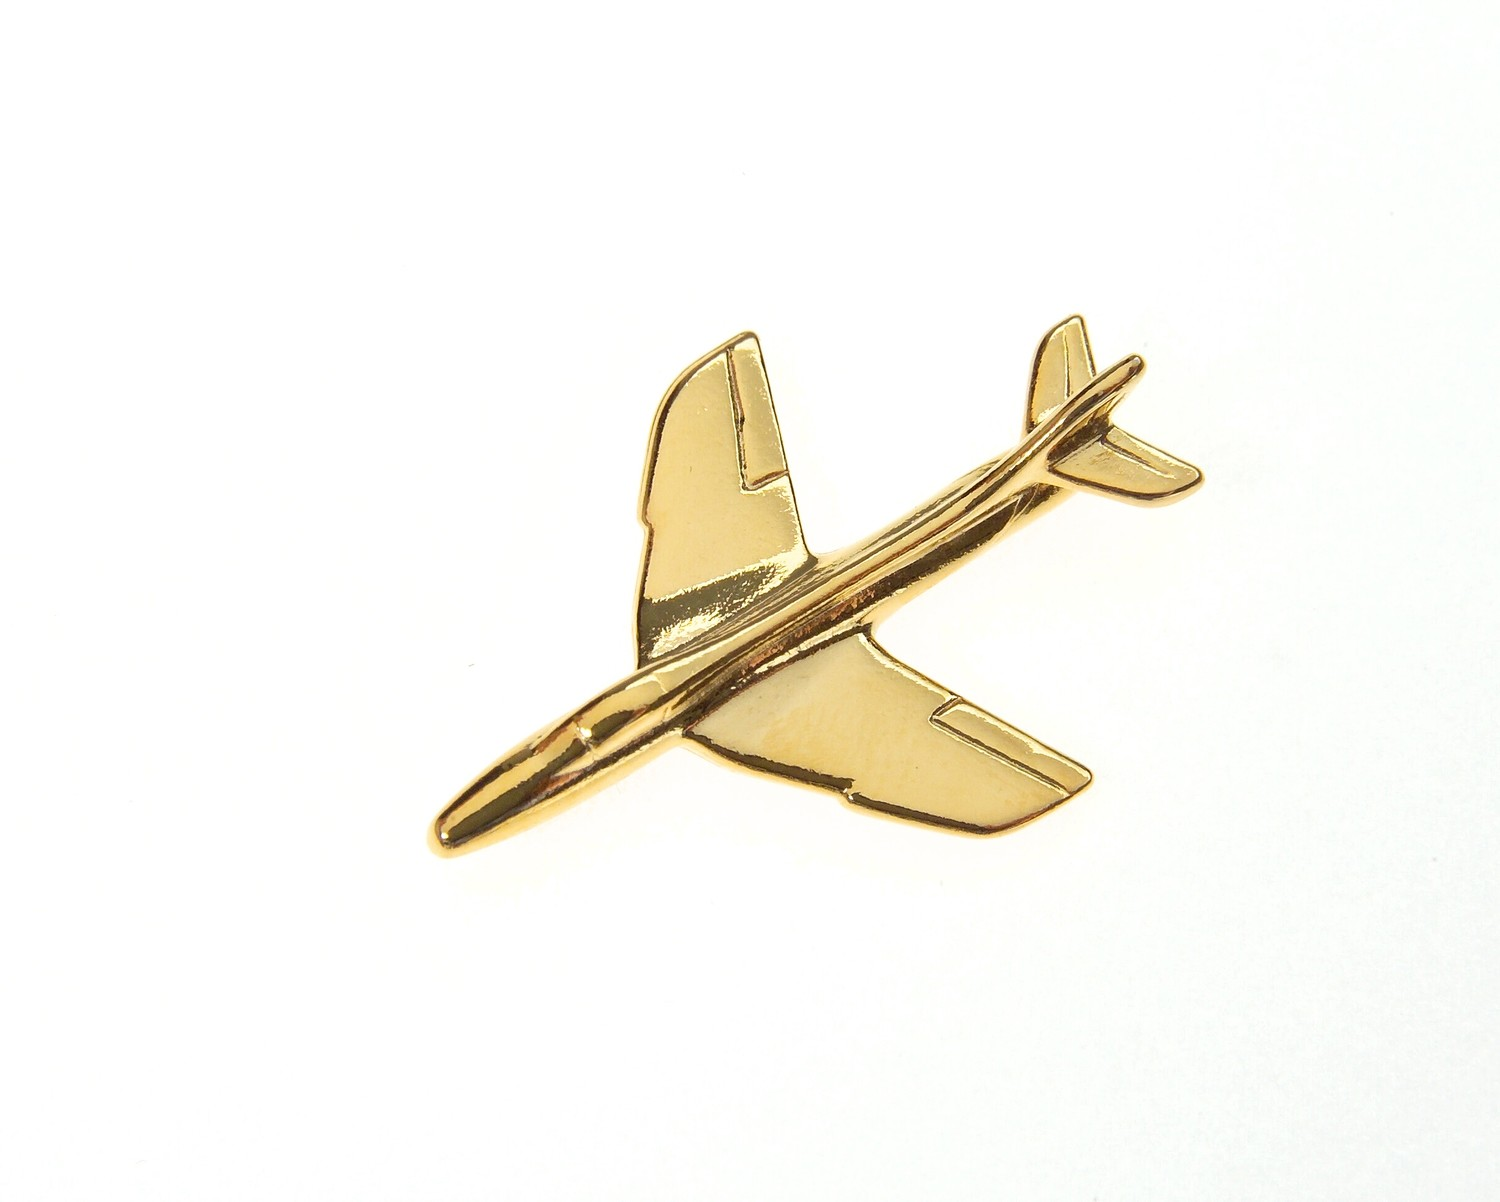 Hawker Hunter Gold Plated Tie / Lapel Pin